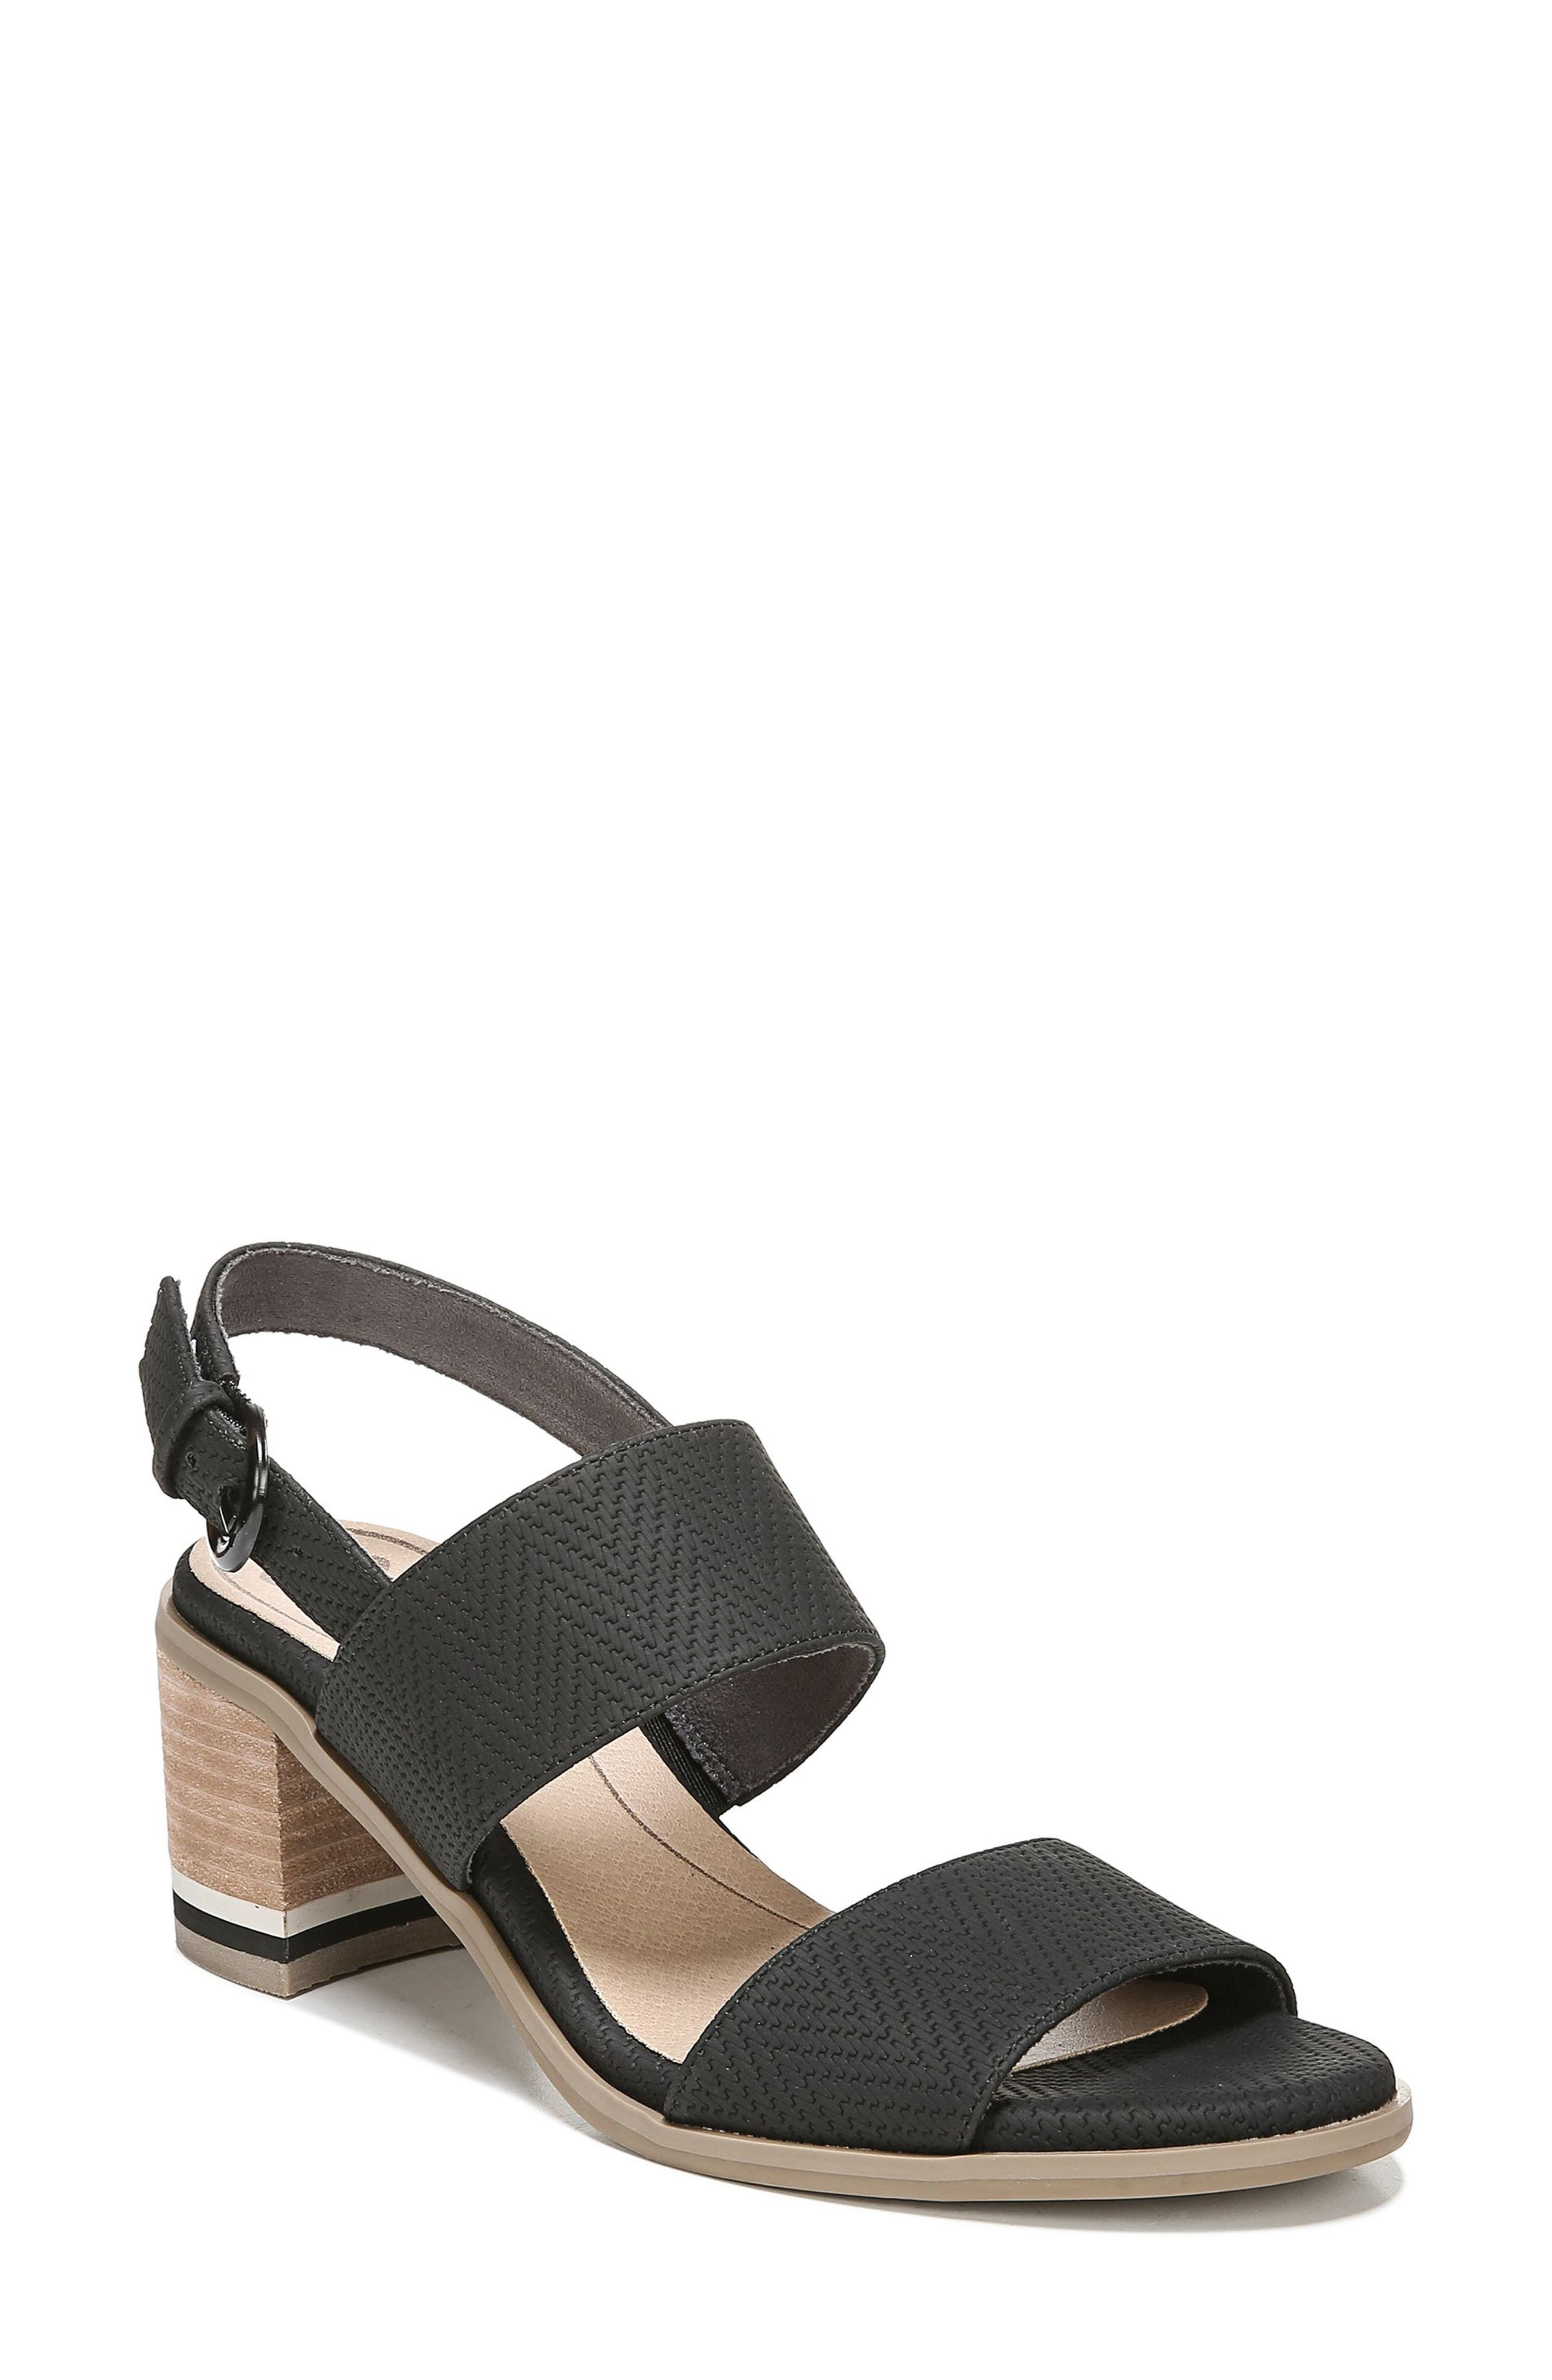 Sure Thing Sandal,                             Main thumbnail 1, color,                             BLACK FAUX LEATHER